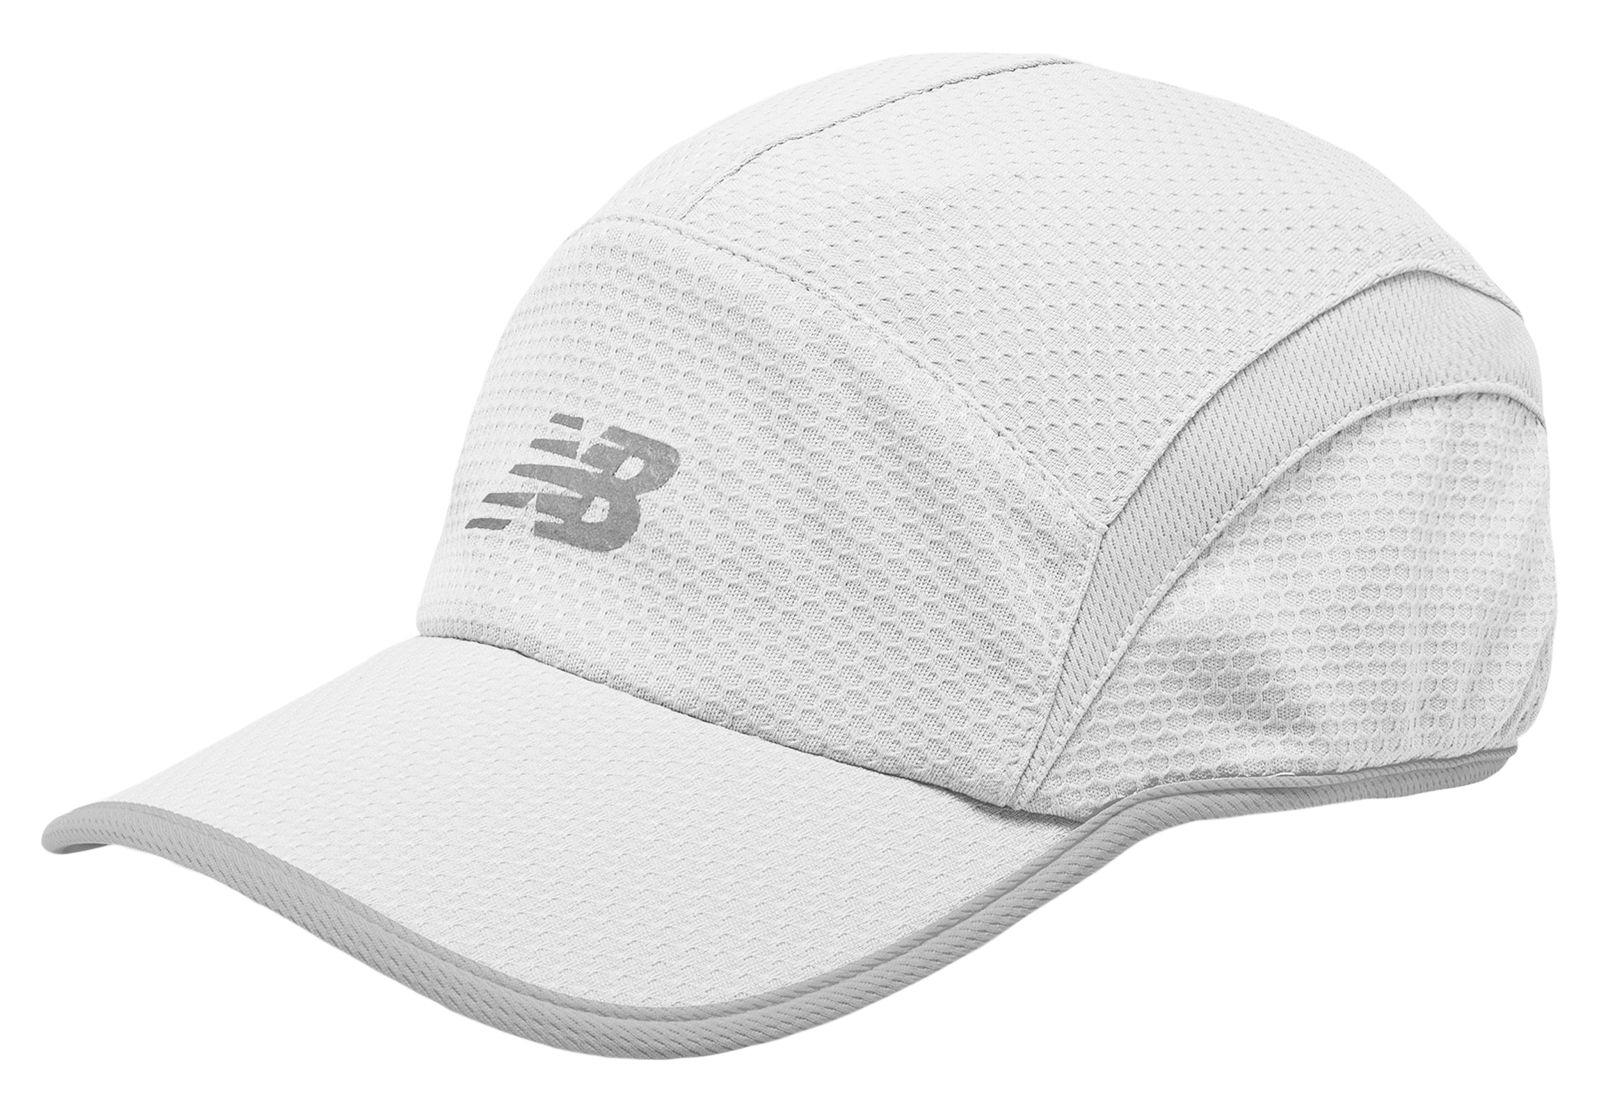 Lyst - New Balance 5 Panel Performance Hat in White for Men 19aff9afaef